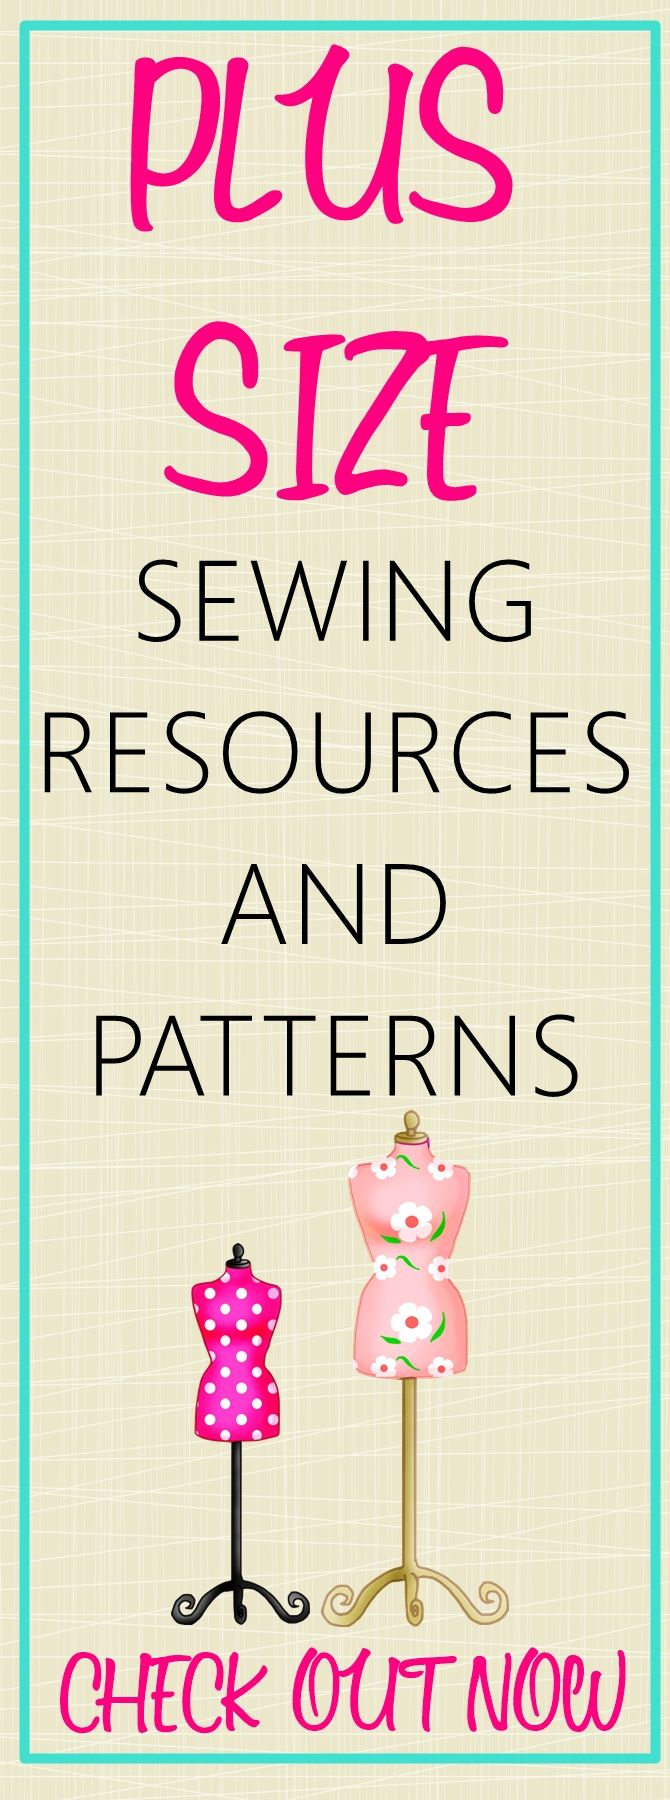 Plus size sewing resources and patterns on sewsomestuff.com. OMG perfect round up of ALL the things you EVER need for plus size sewing. Online classes, books AND patterns. CHECK OUT NOW  Check out our amazing collection of plus size dresses at http://wholesaleplussize.clothing/